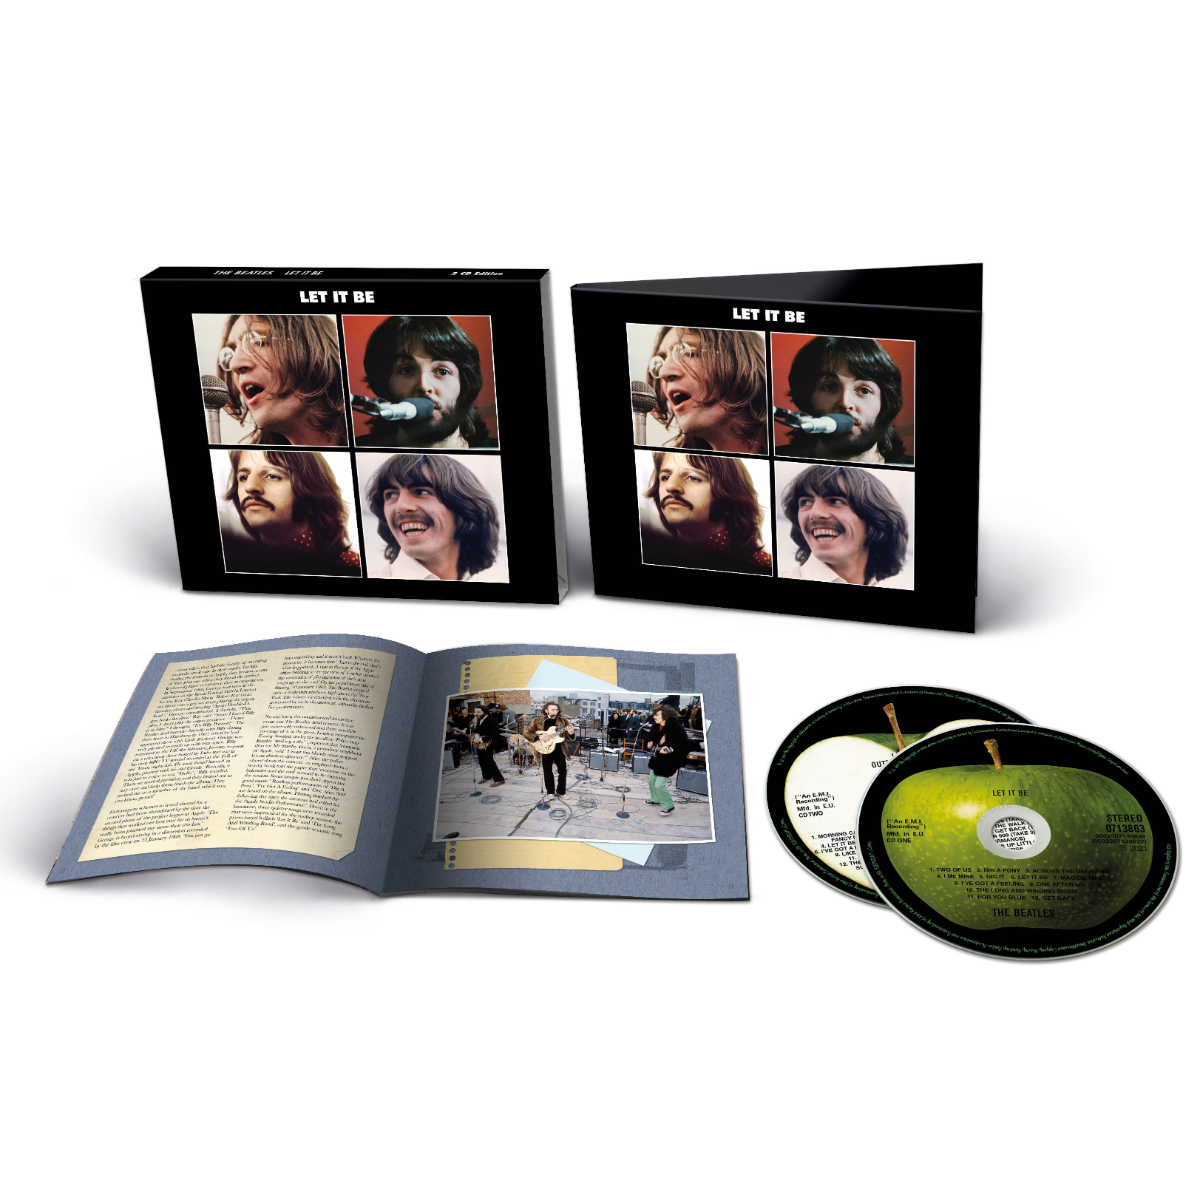 Let It Be Special Edition – Deluxe 2CD